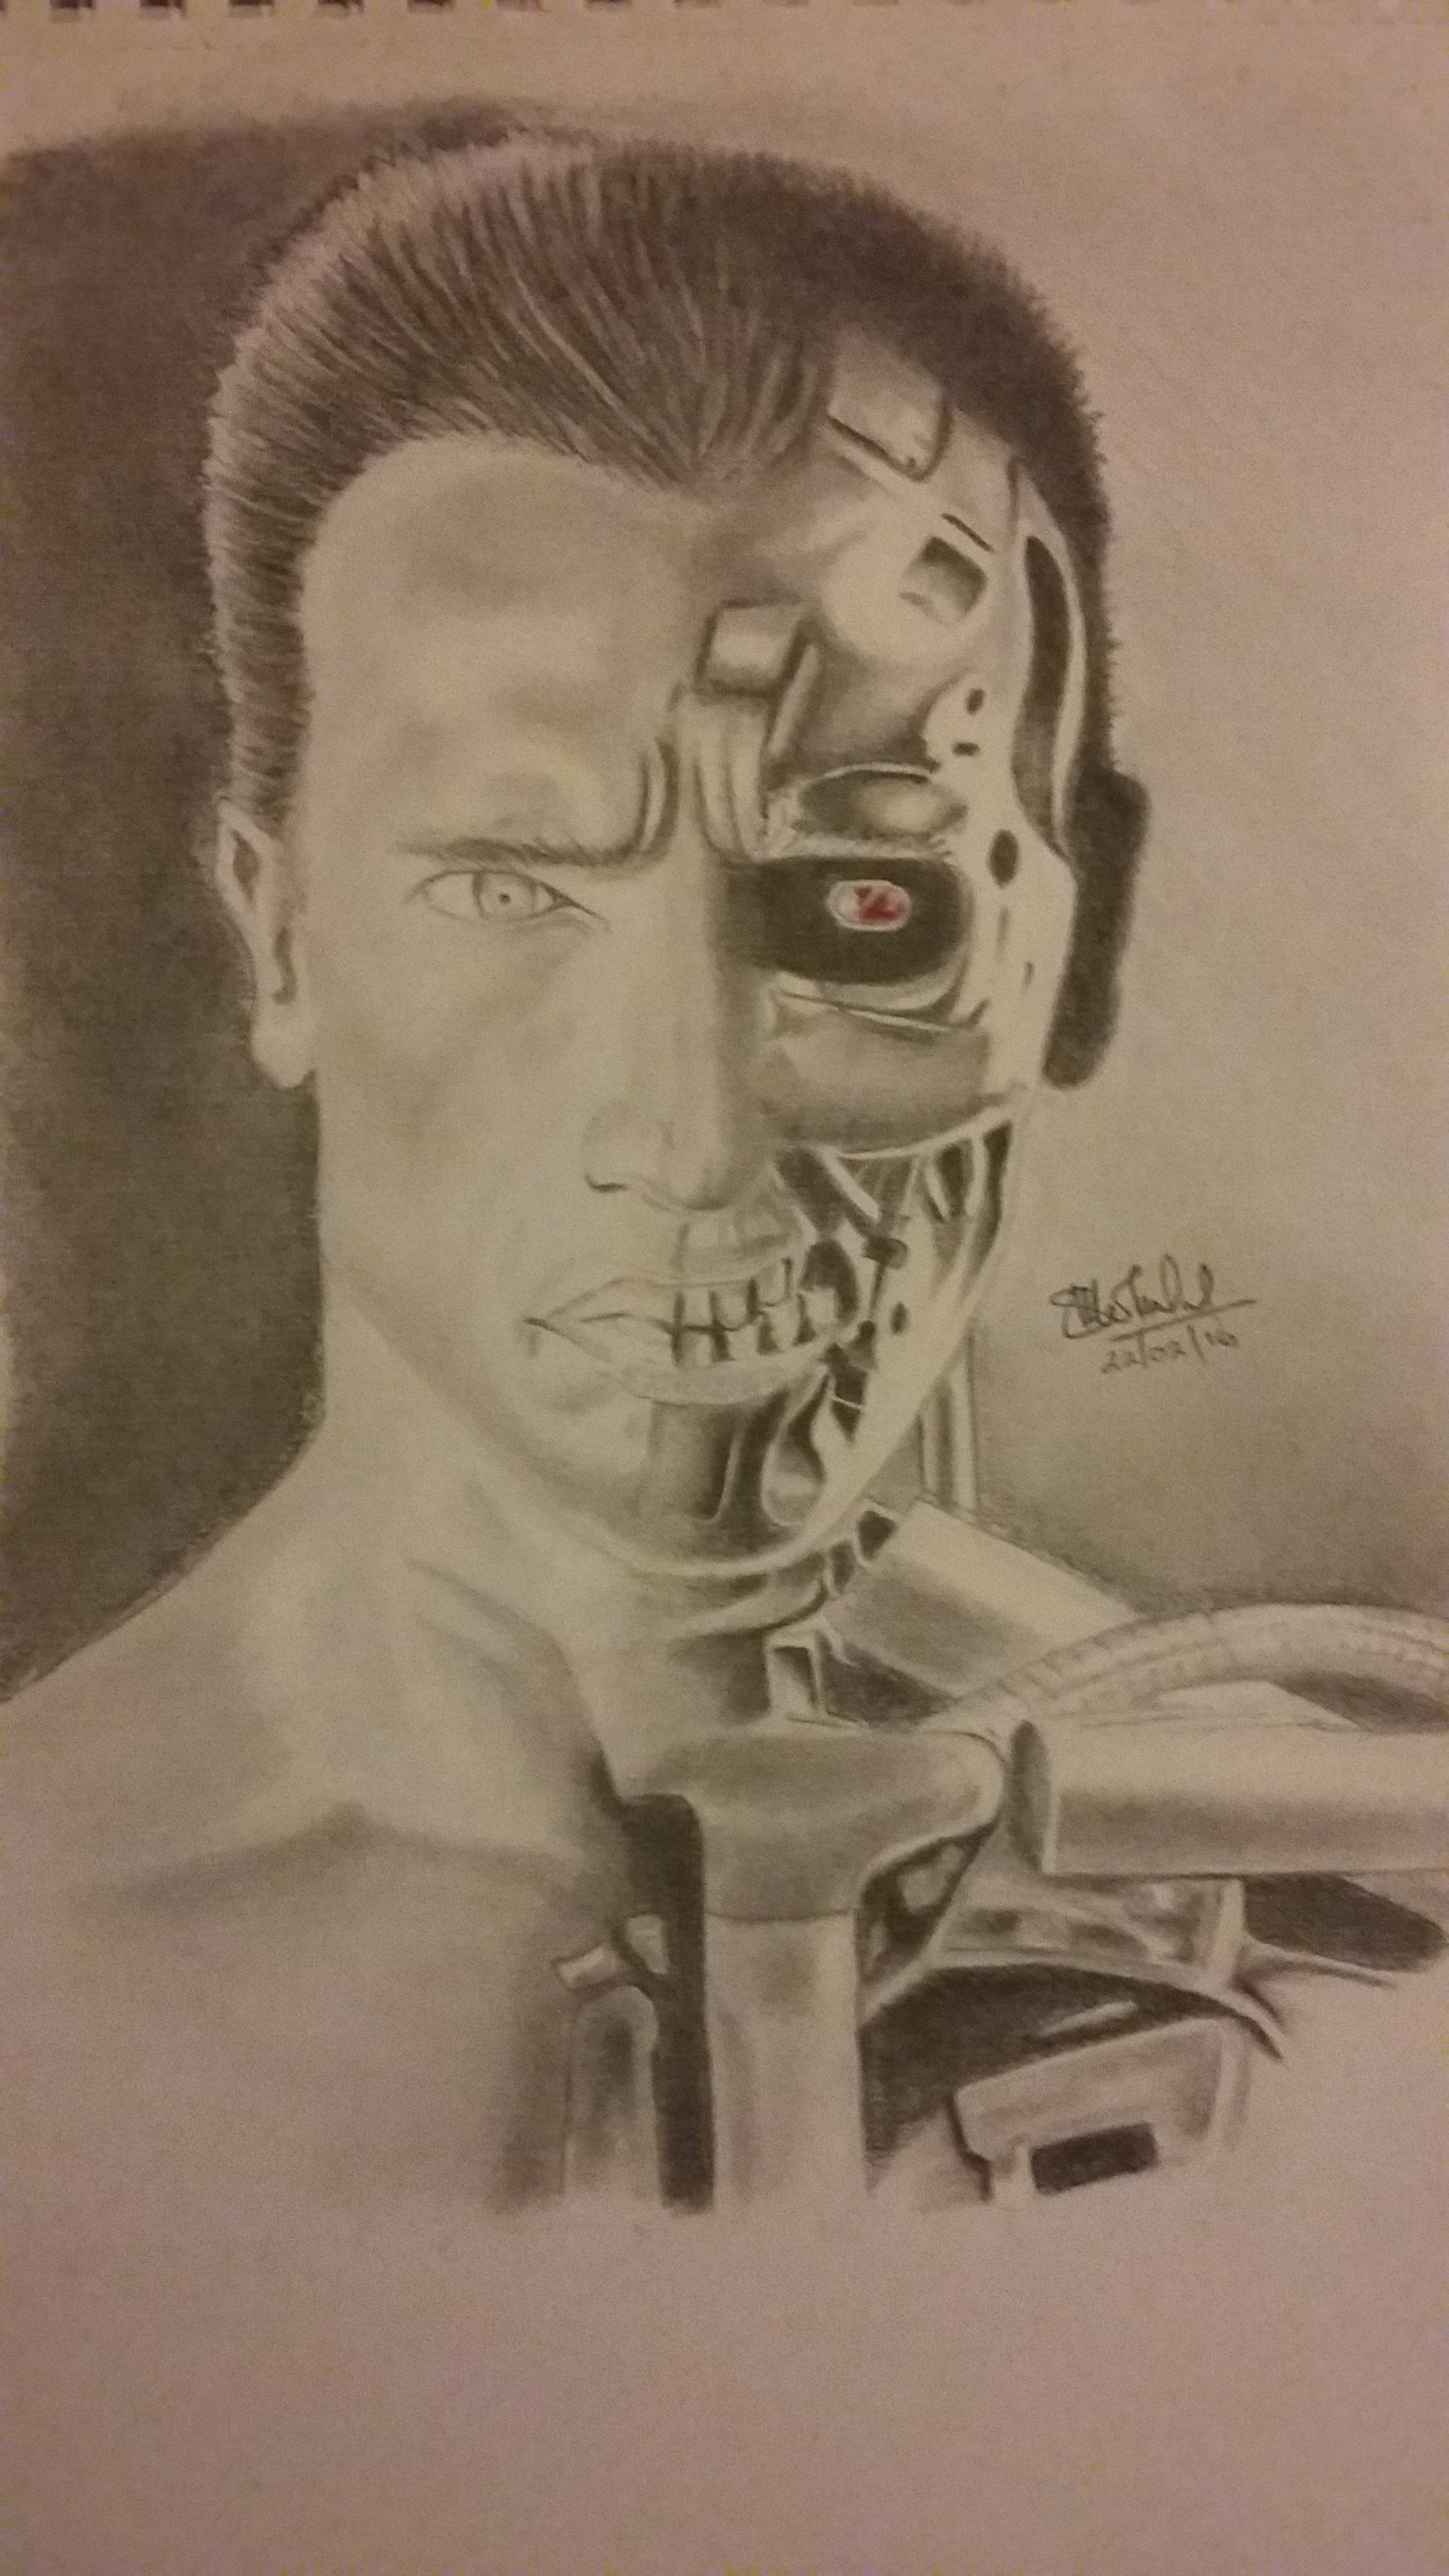 recent sketches of mine-terminator-final.jpg